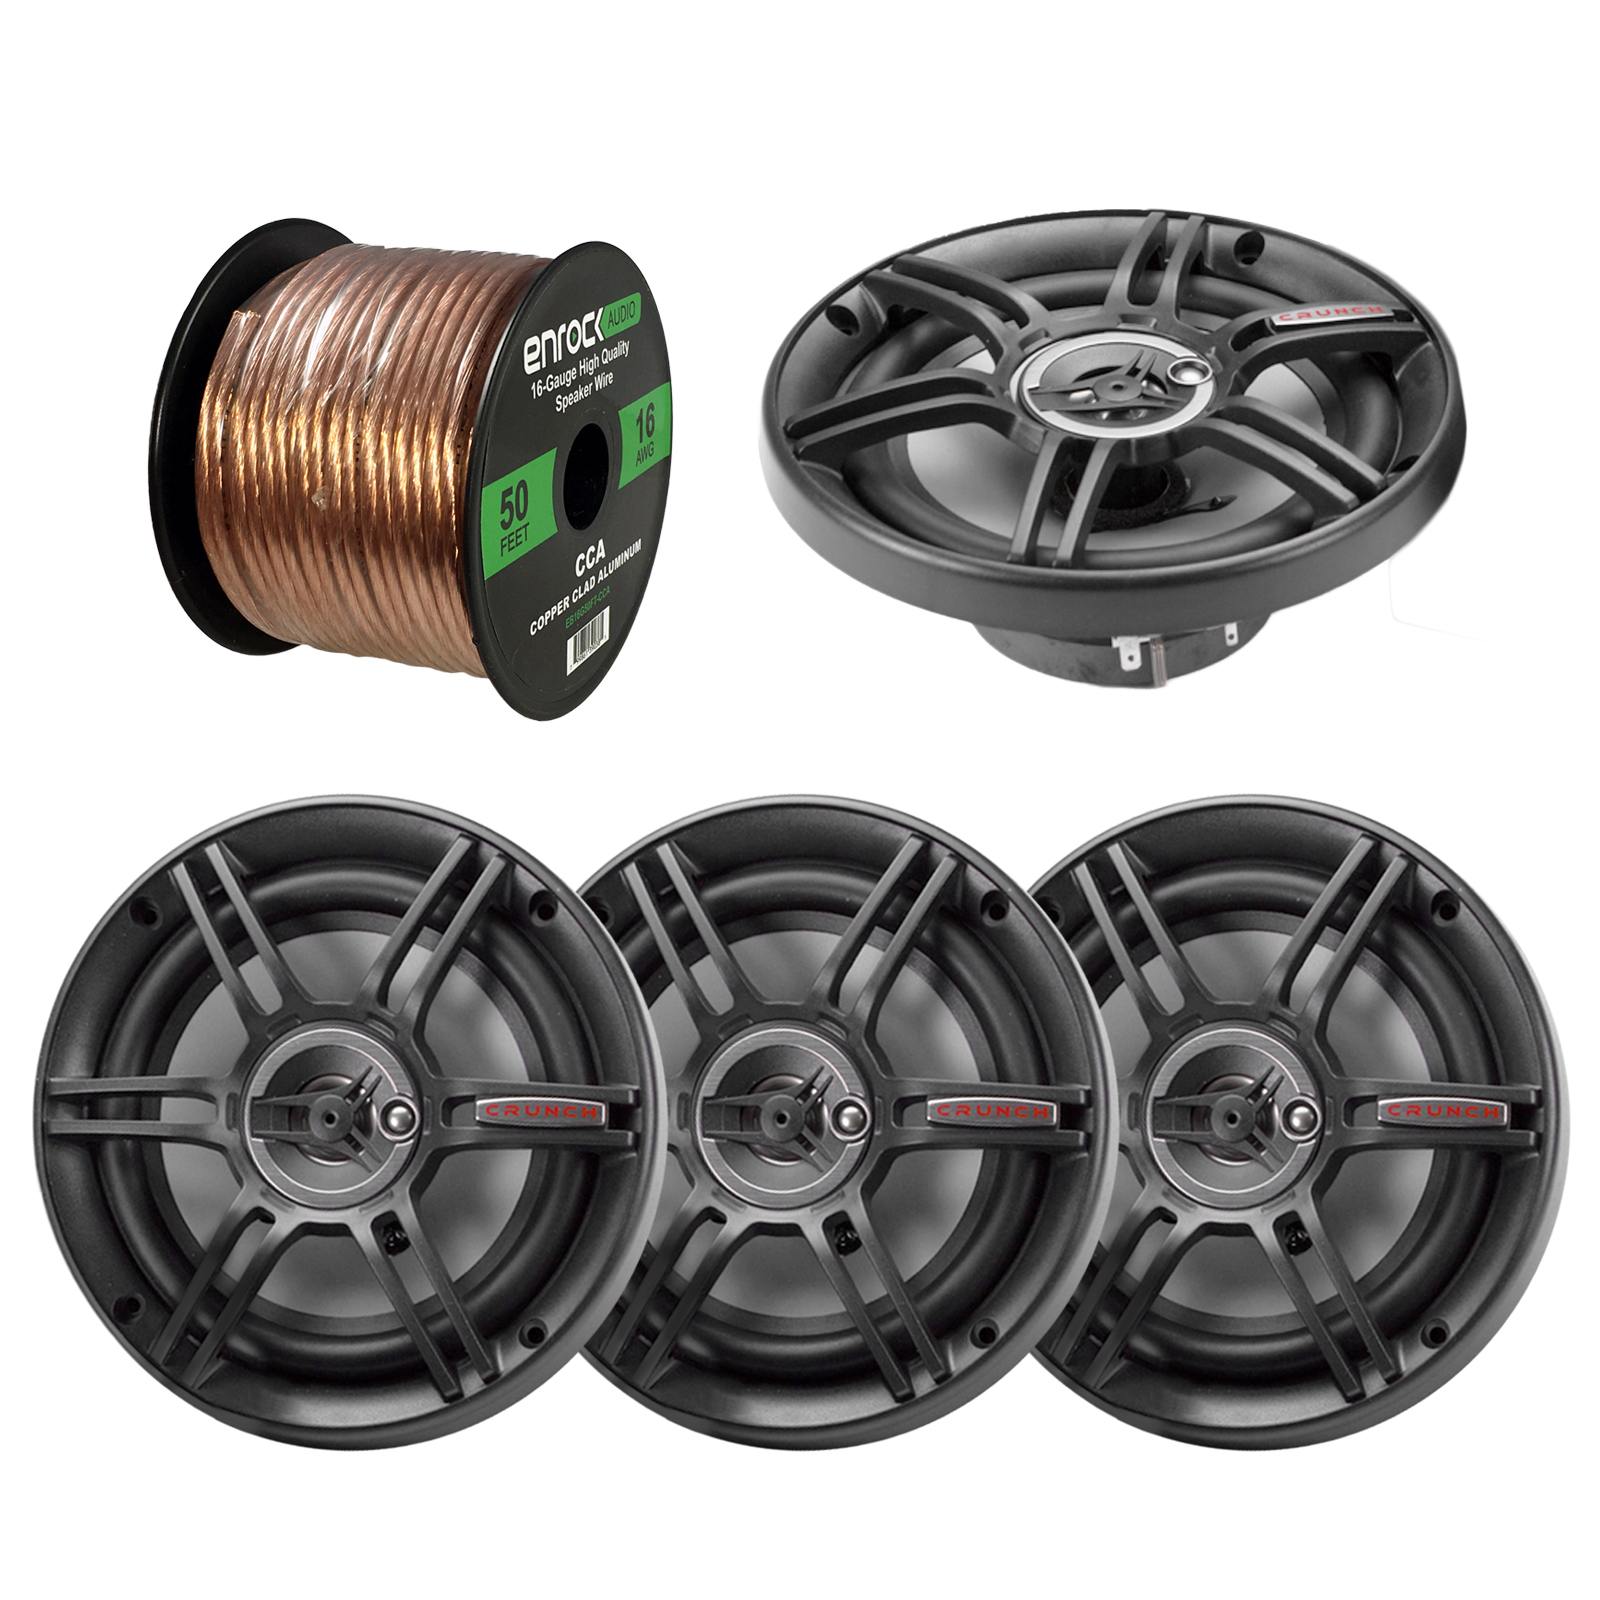 "2 x Crunch CS65CXS 6.5"" 3-Way Black Car Speakers (2 pairs), Enrock Audio 16-Gauge 50 Foot Speaker Wire"